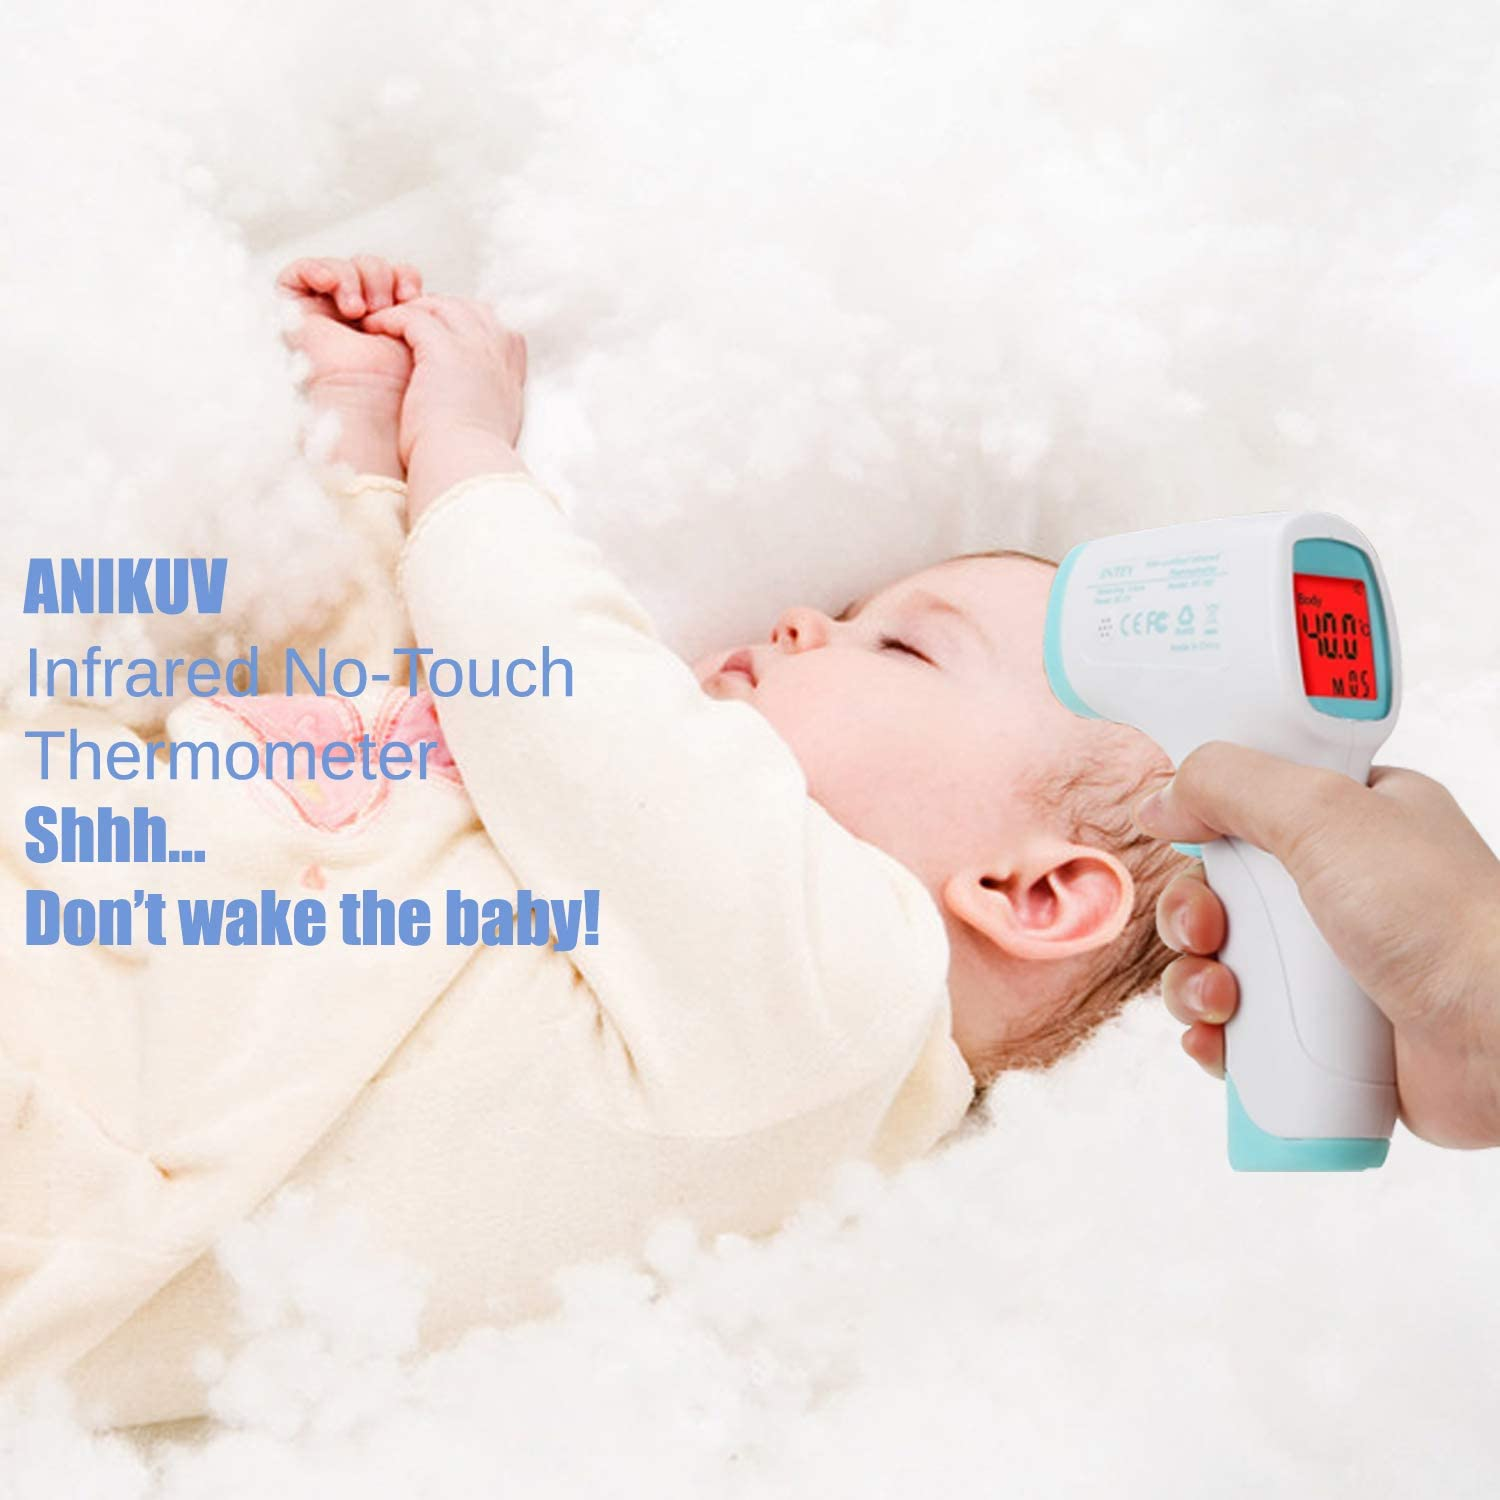 Non-Contact Infrared Body Temperature Thermometer Accurate Fever Thermometer Kids ANIKUV Forehead Digital Thermometer for Baby Adults and Pets